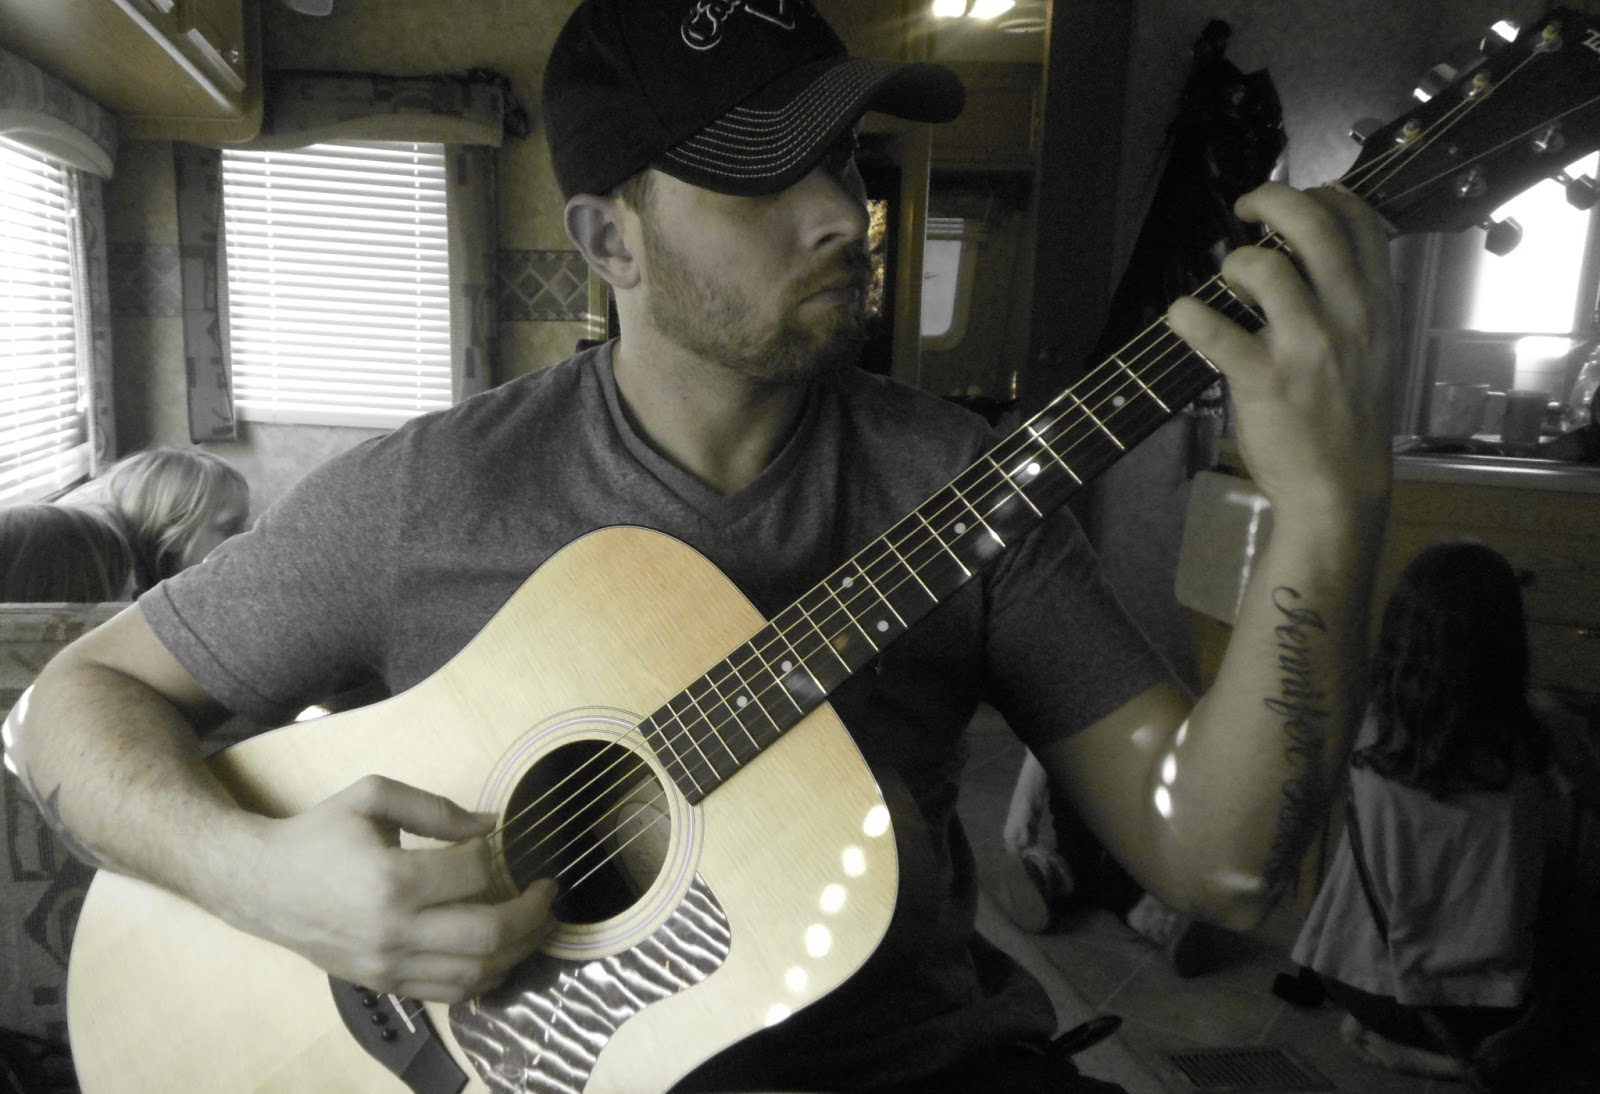 Rob and his guitar